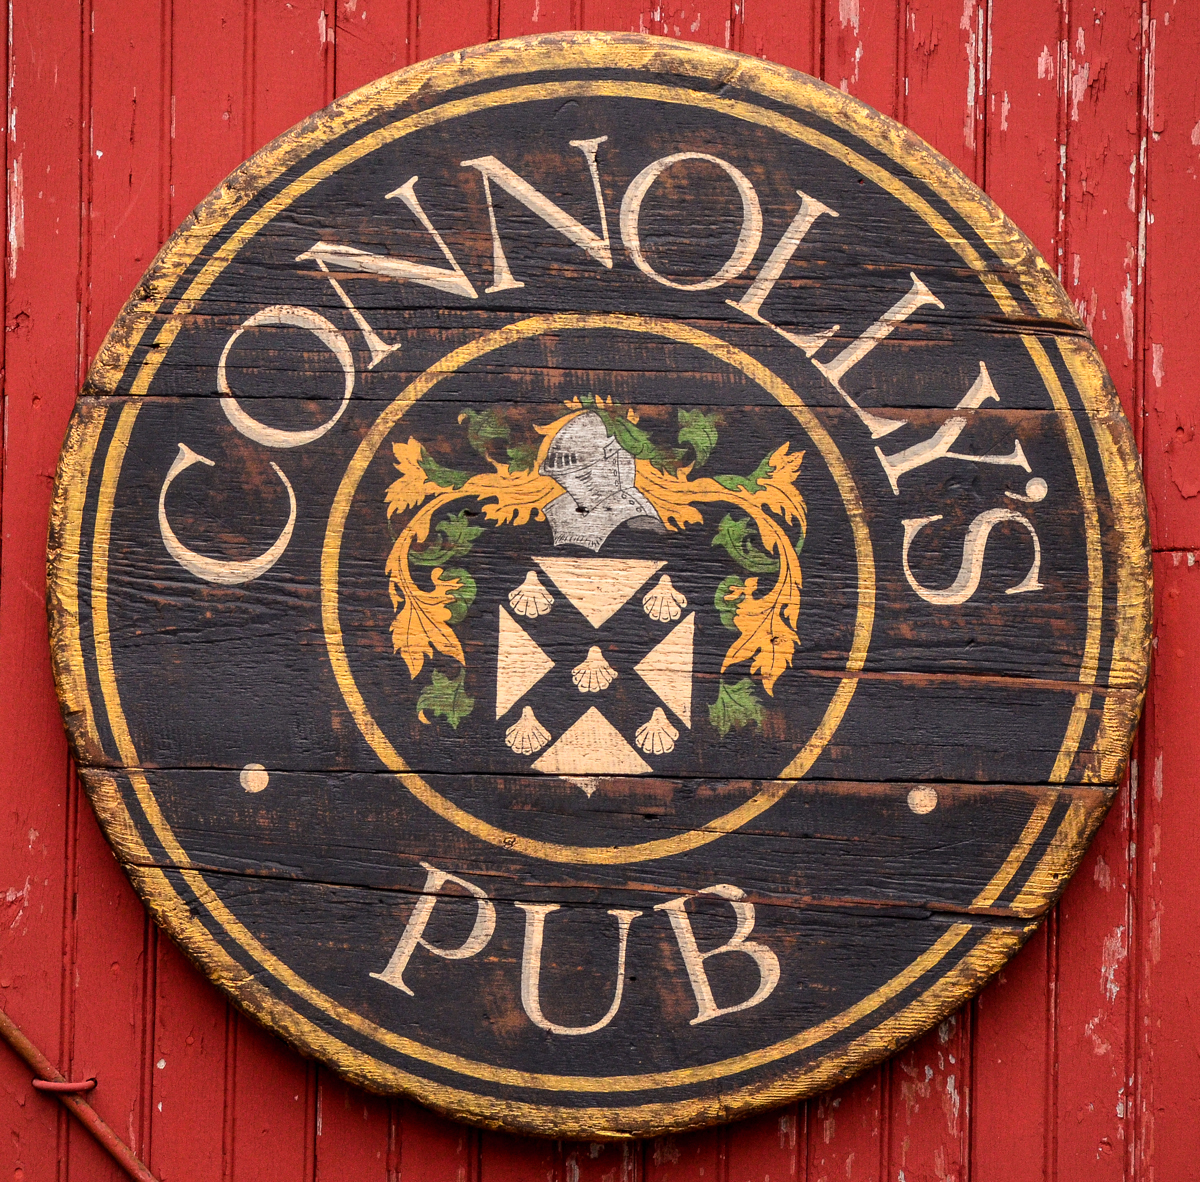 Connolly's Pub